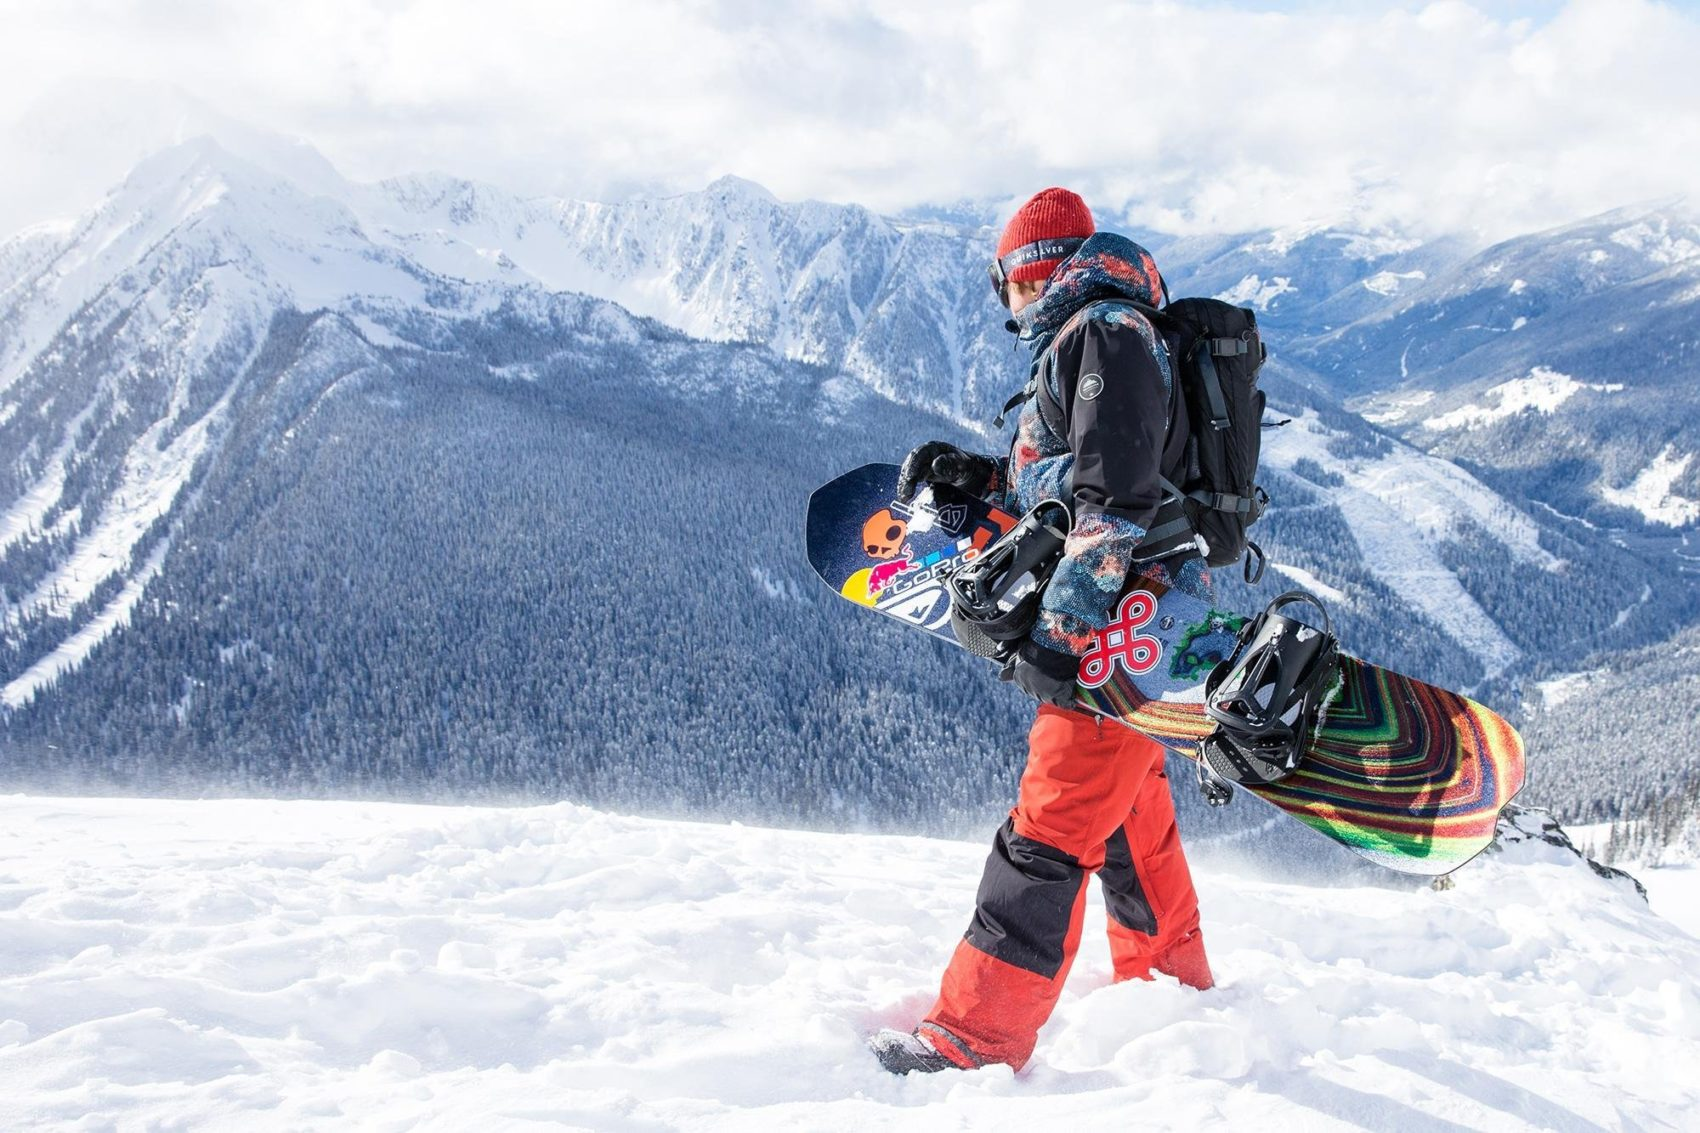 Travis Rice brings art back into the snowboarding industry